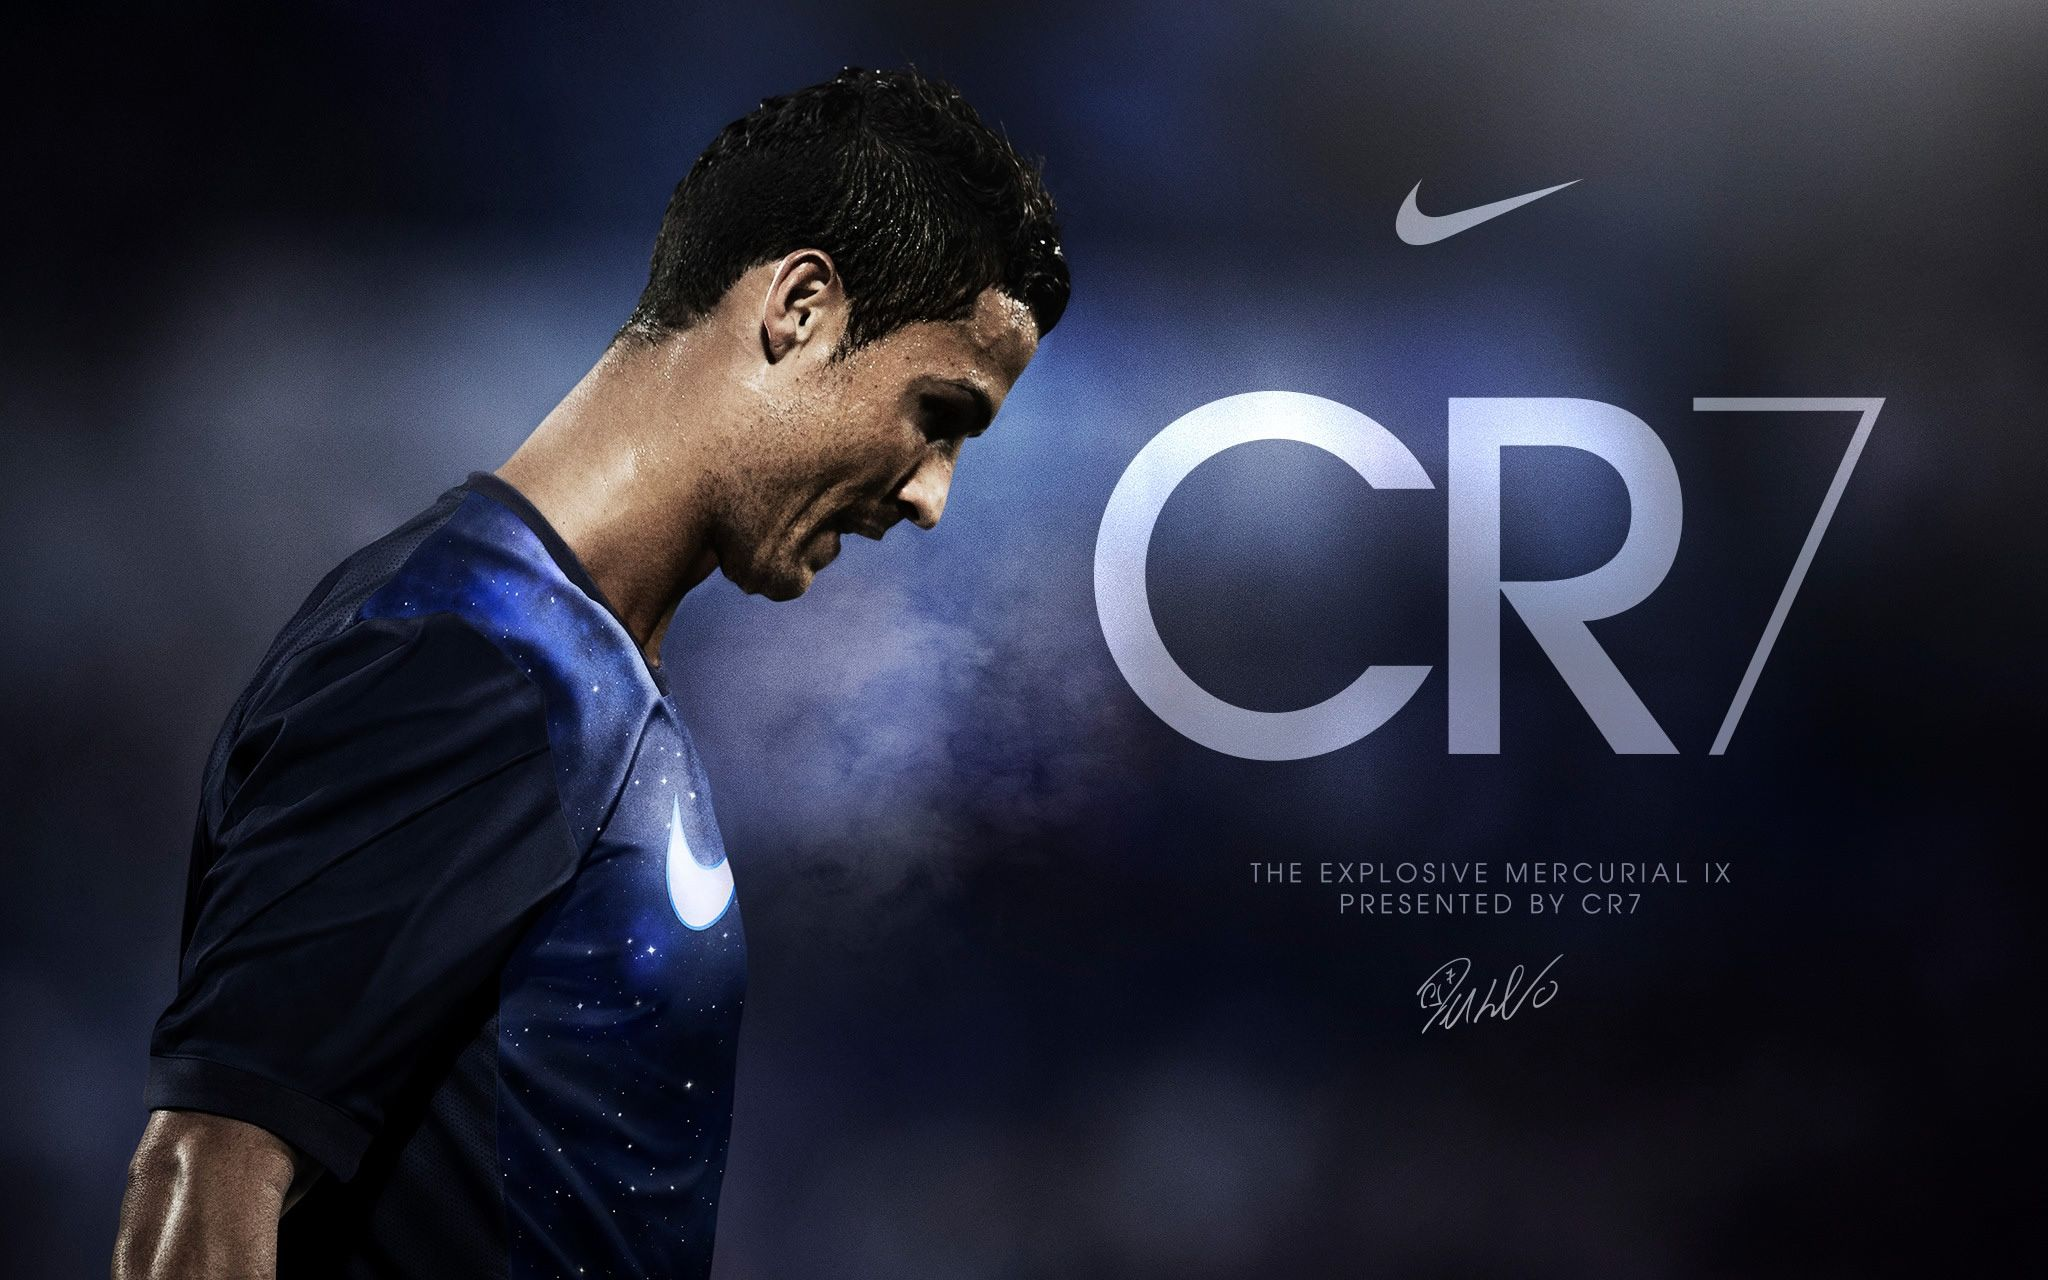 cristiano ronaldo wallpapers - cr7 hd wallpaper | sports | pinterest